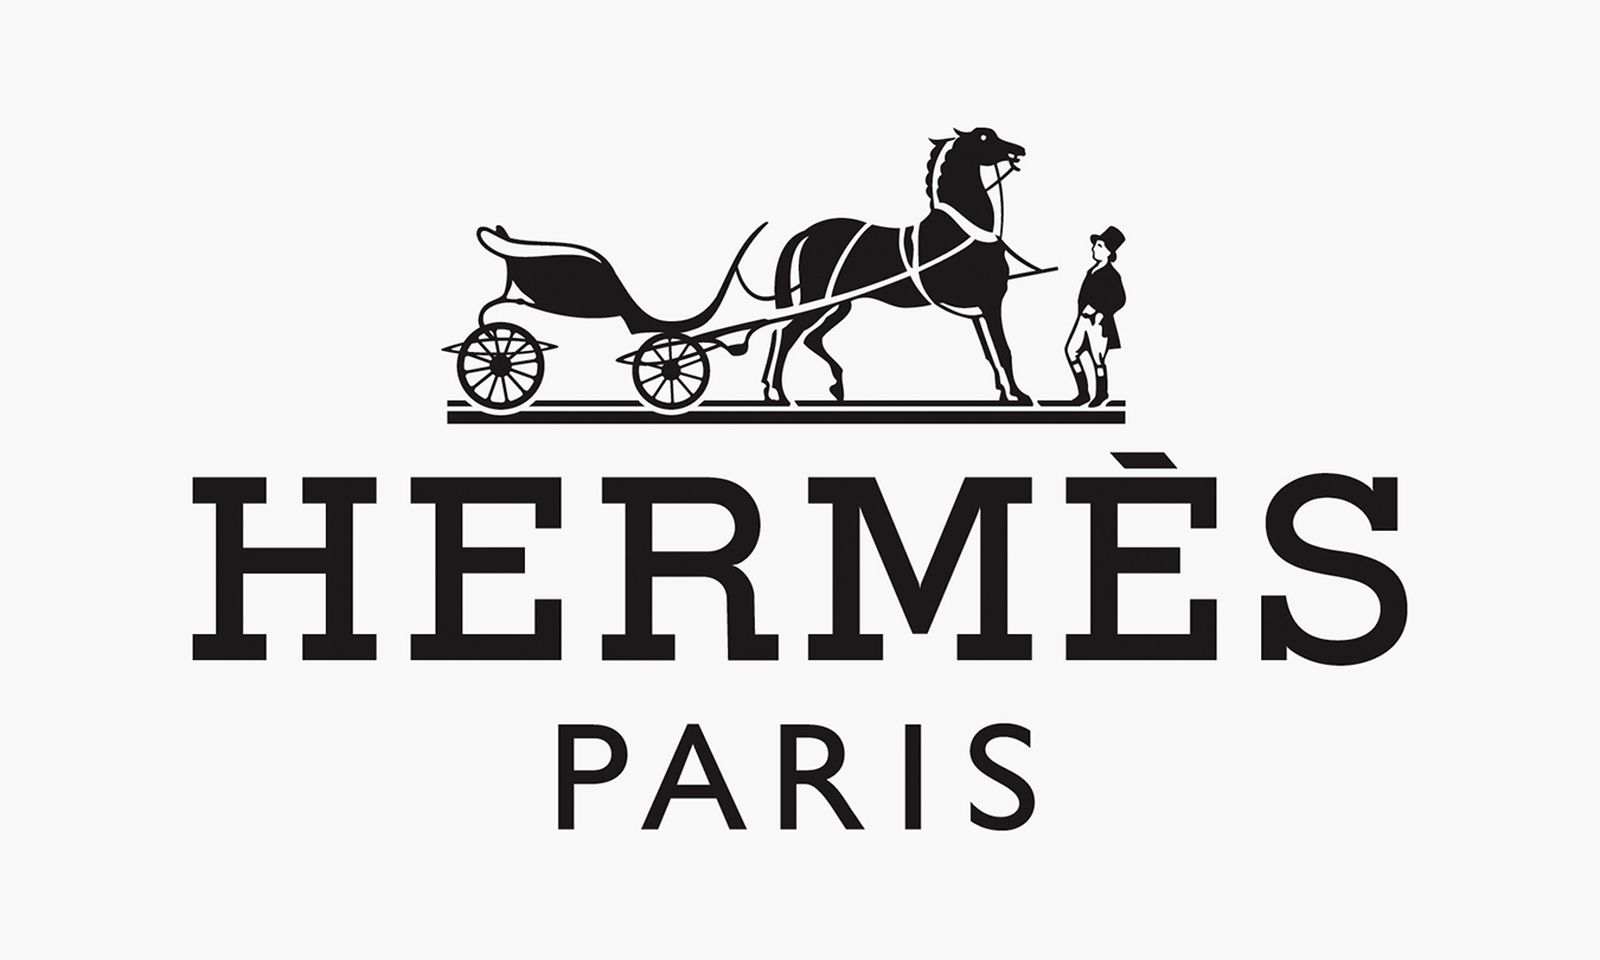 the-inspirations-behind-20-of-the-most-well-known-logos-in-high-fashion-04